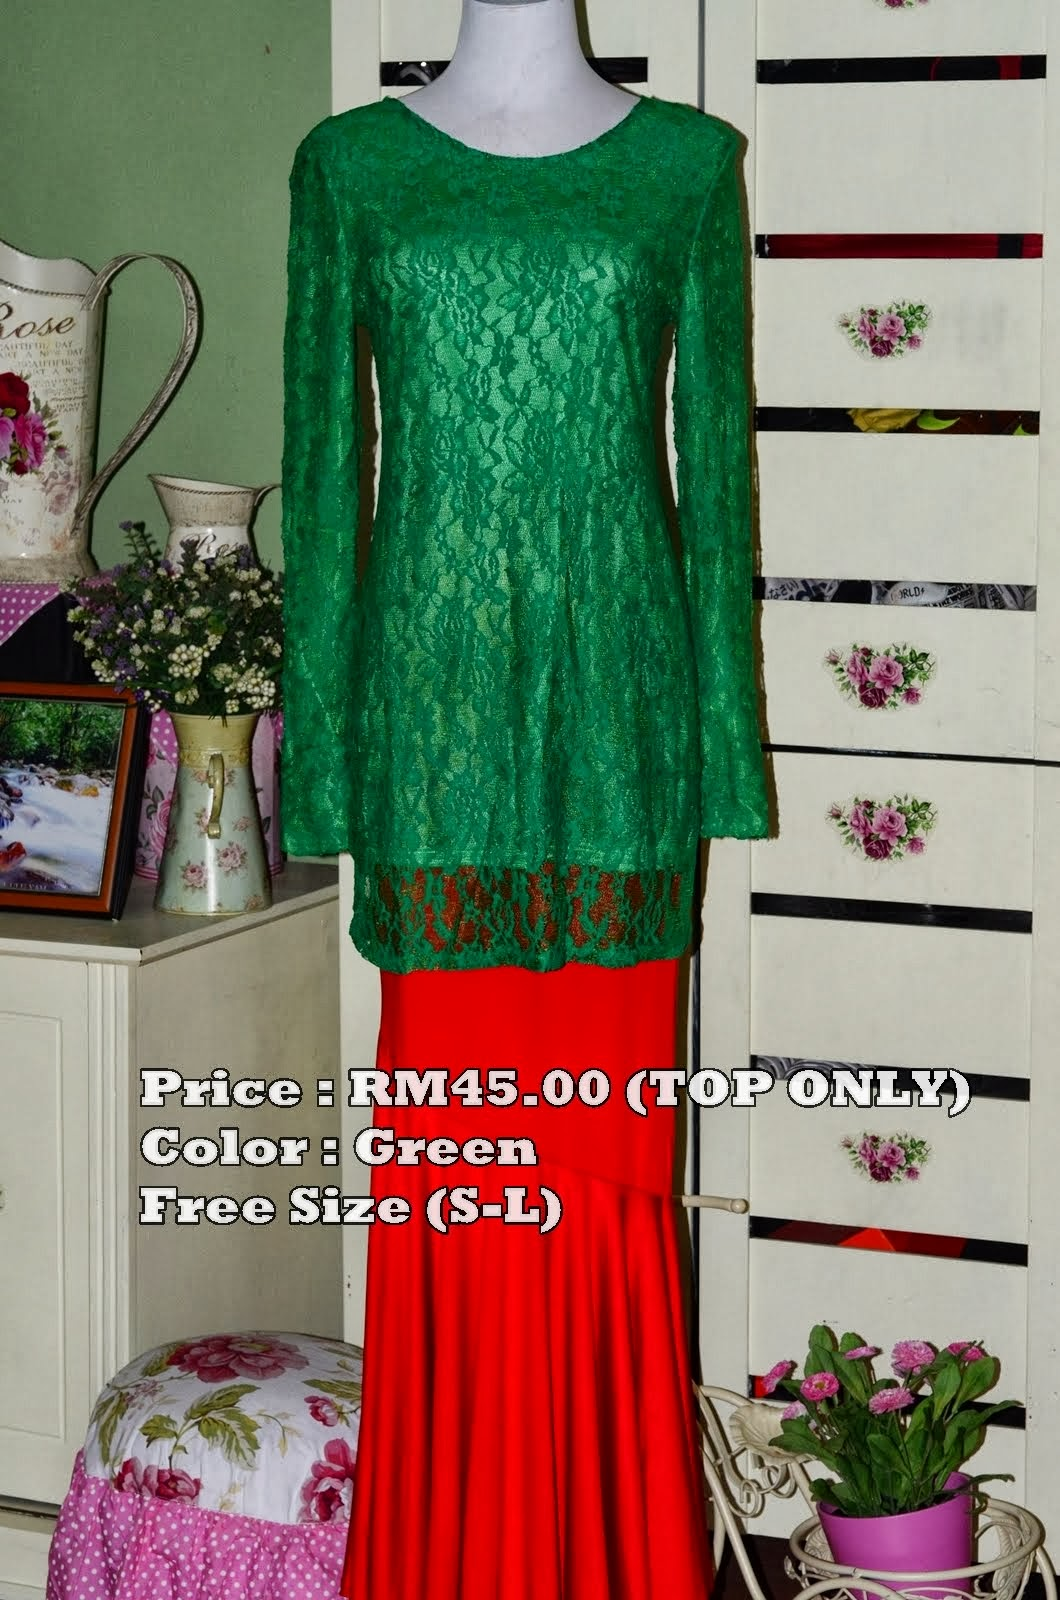 FULL LINING BLOUSE